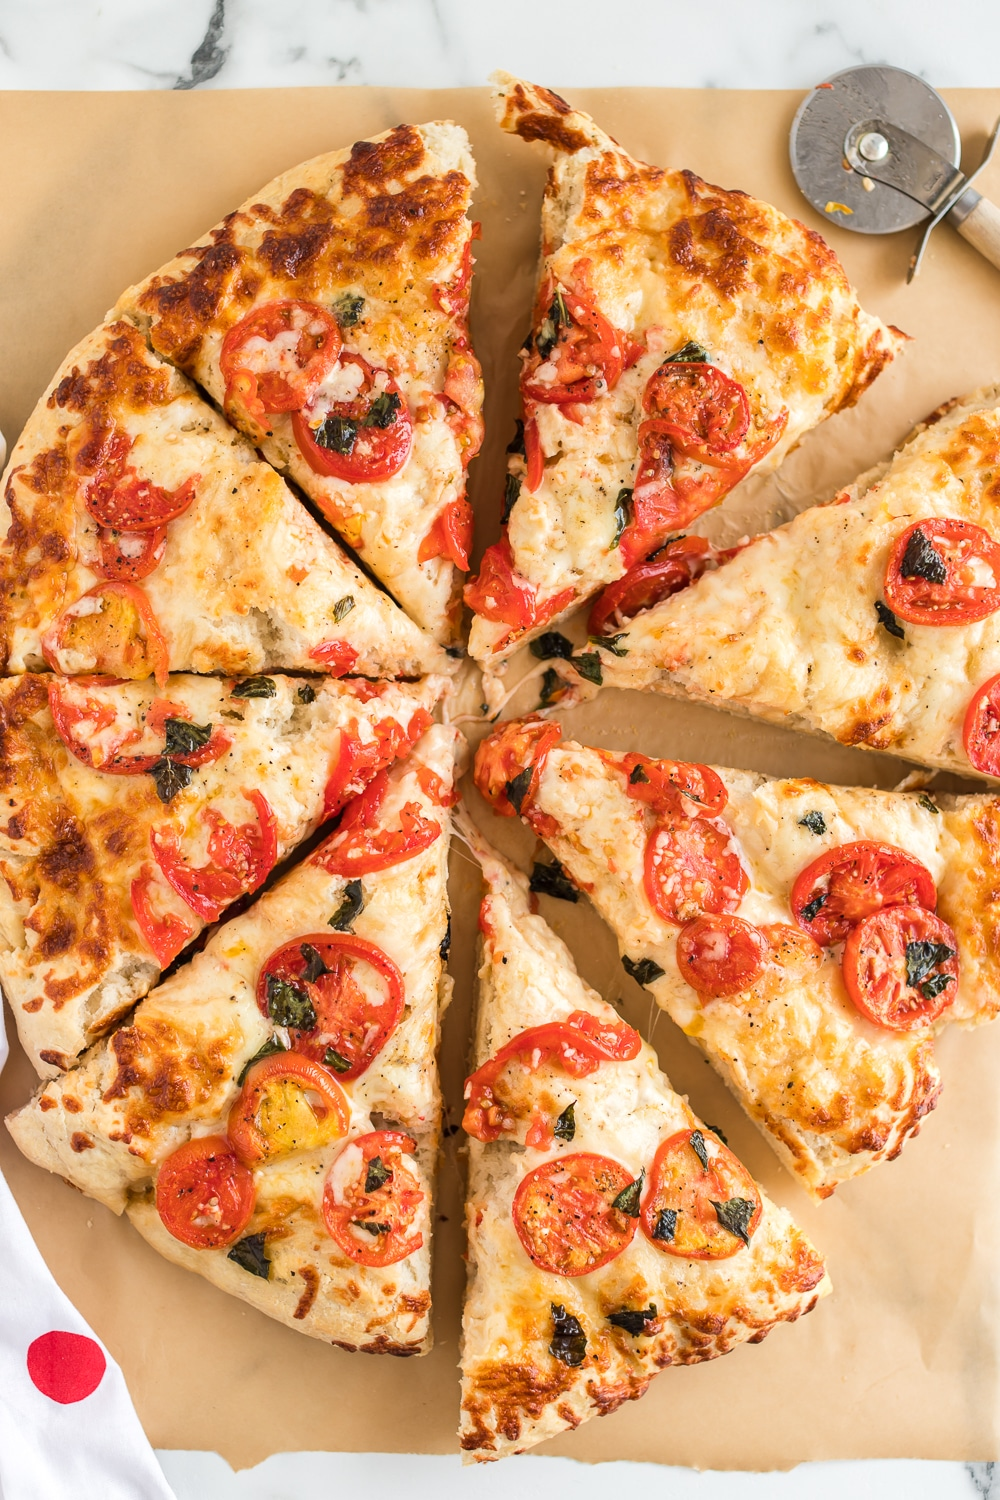 Margherita Pizza: a delicious homemade pizza full of flavor! Fresh tomatoes and basil are the key ingredients to this delicious and simple pizza recipe.